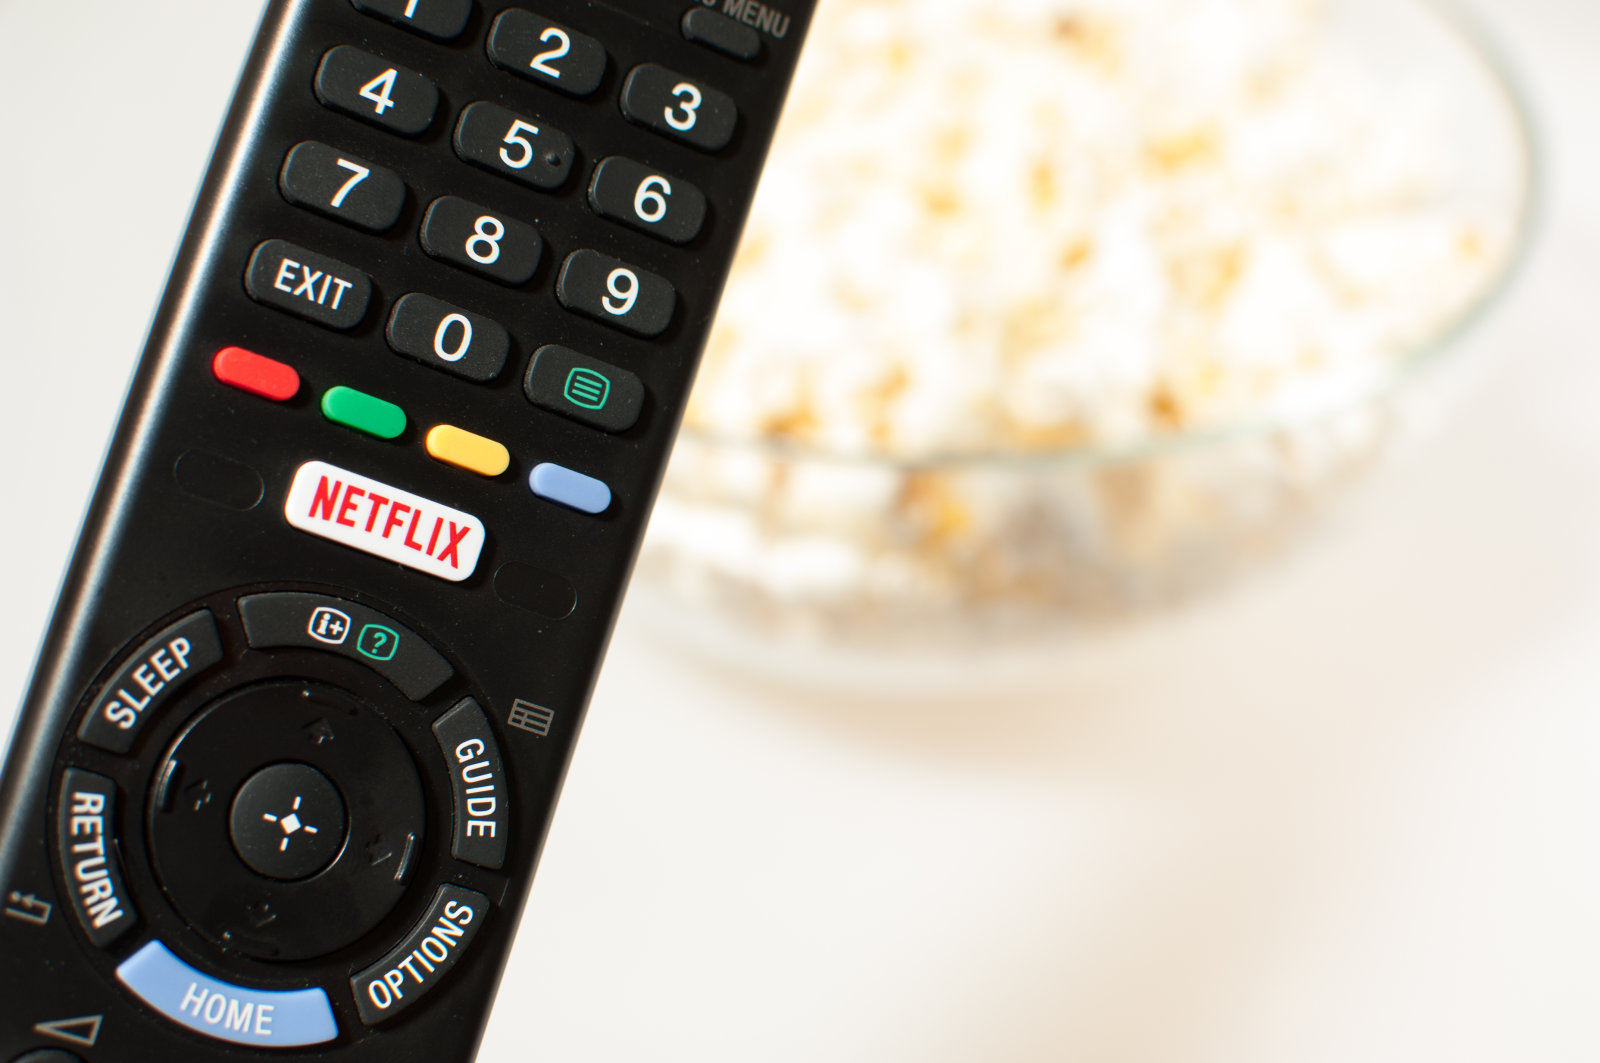 Remote control smart TV with Netflix button with popcorn.